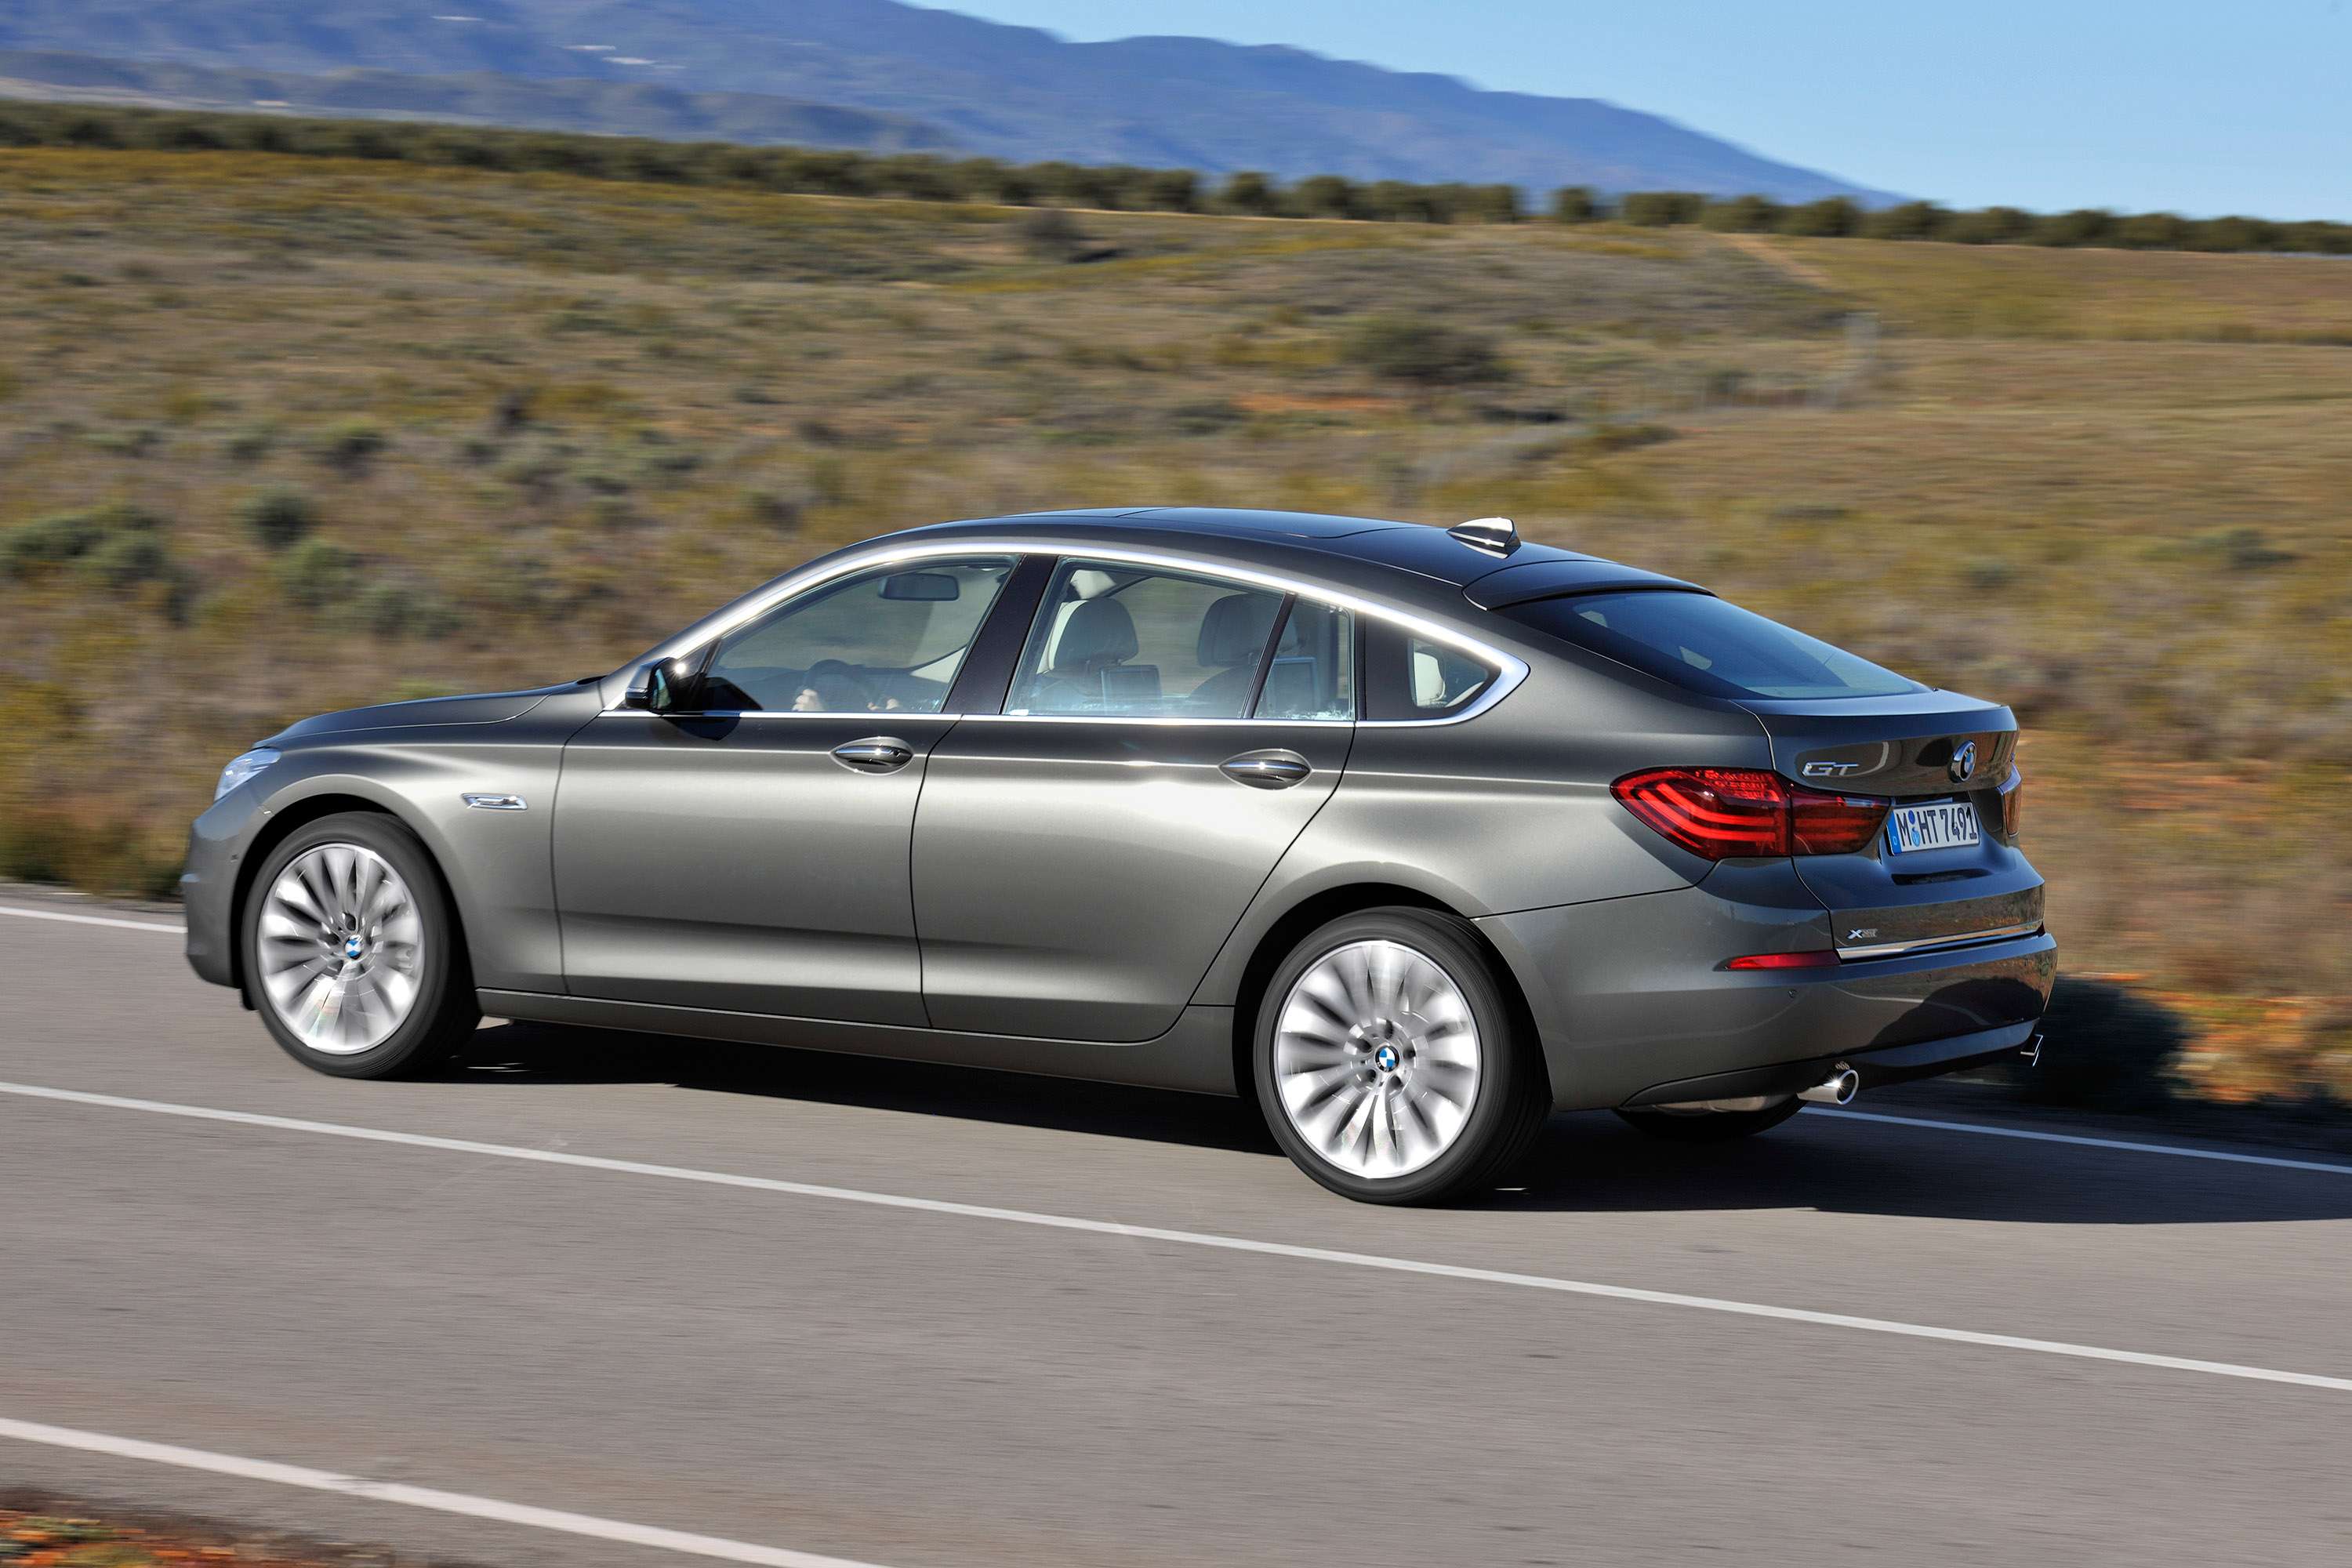 Bmw 5 Series Sedan And Gran Turismo Specifications And Pricing